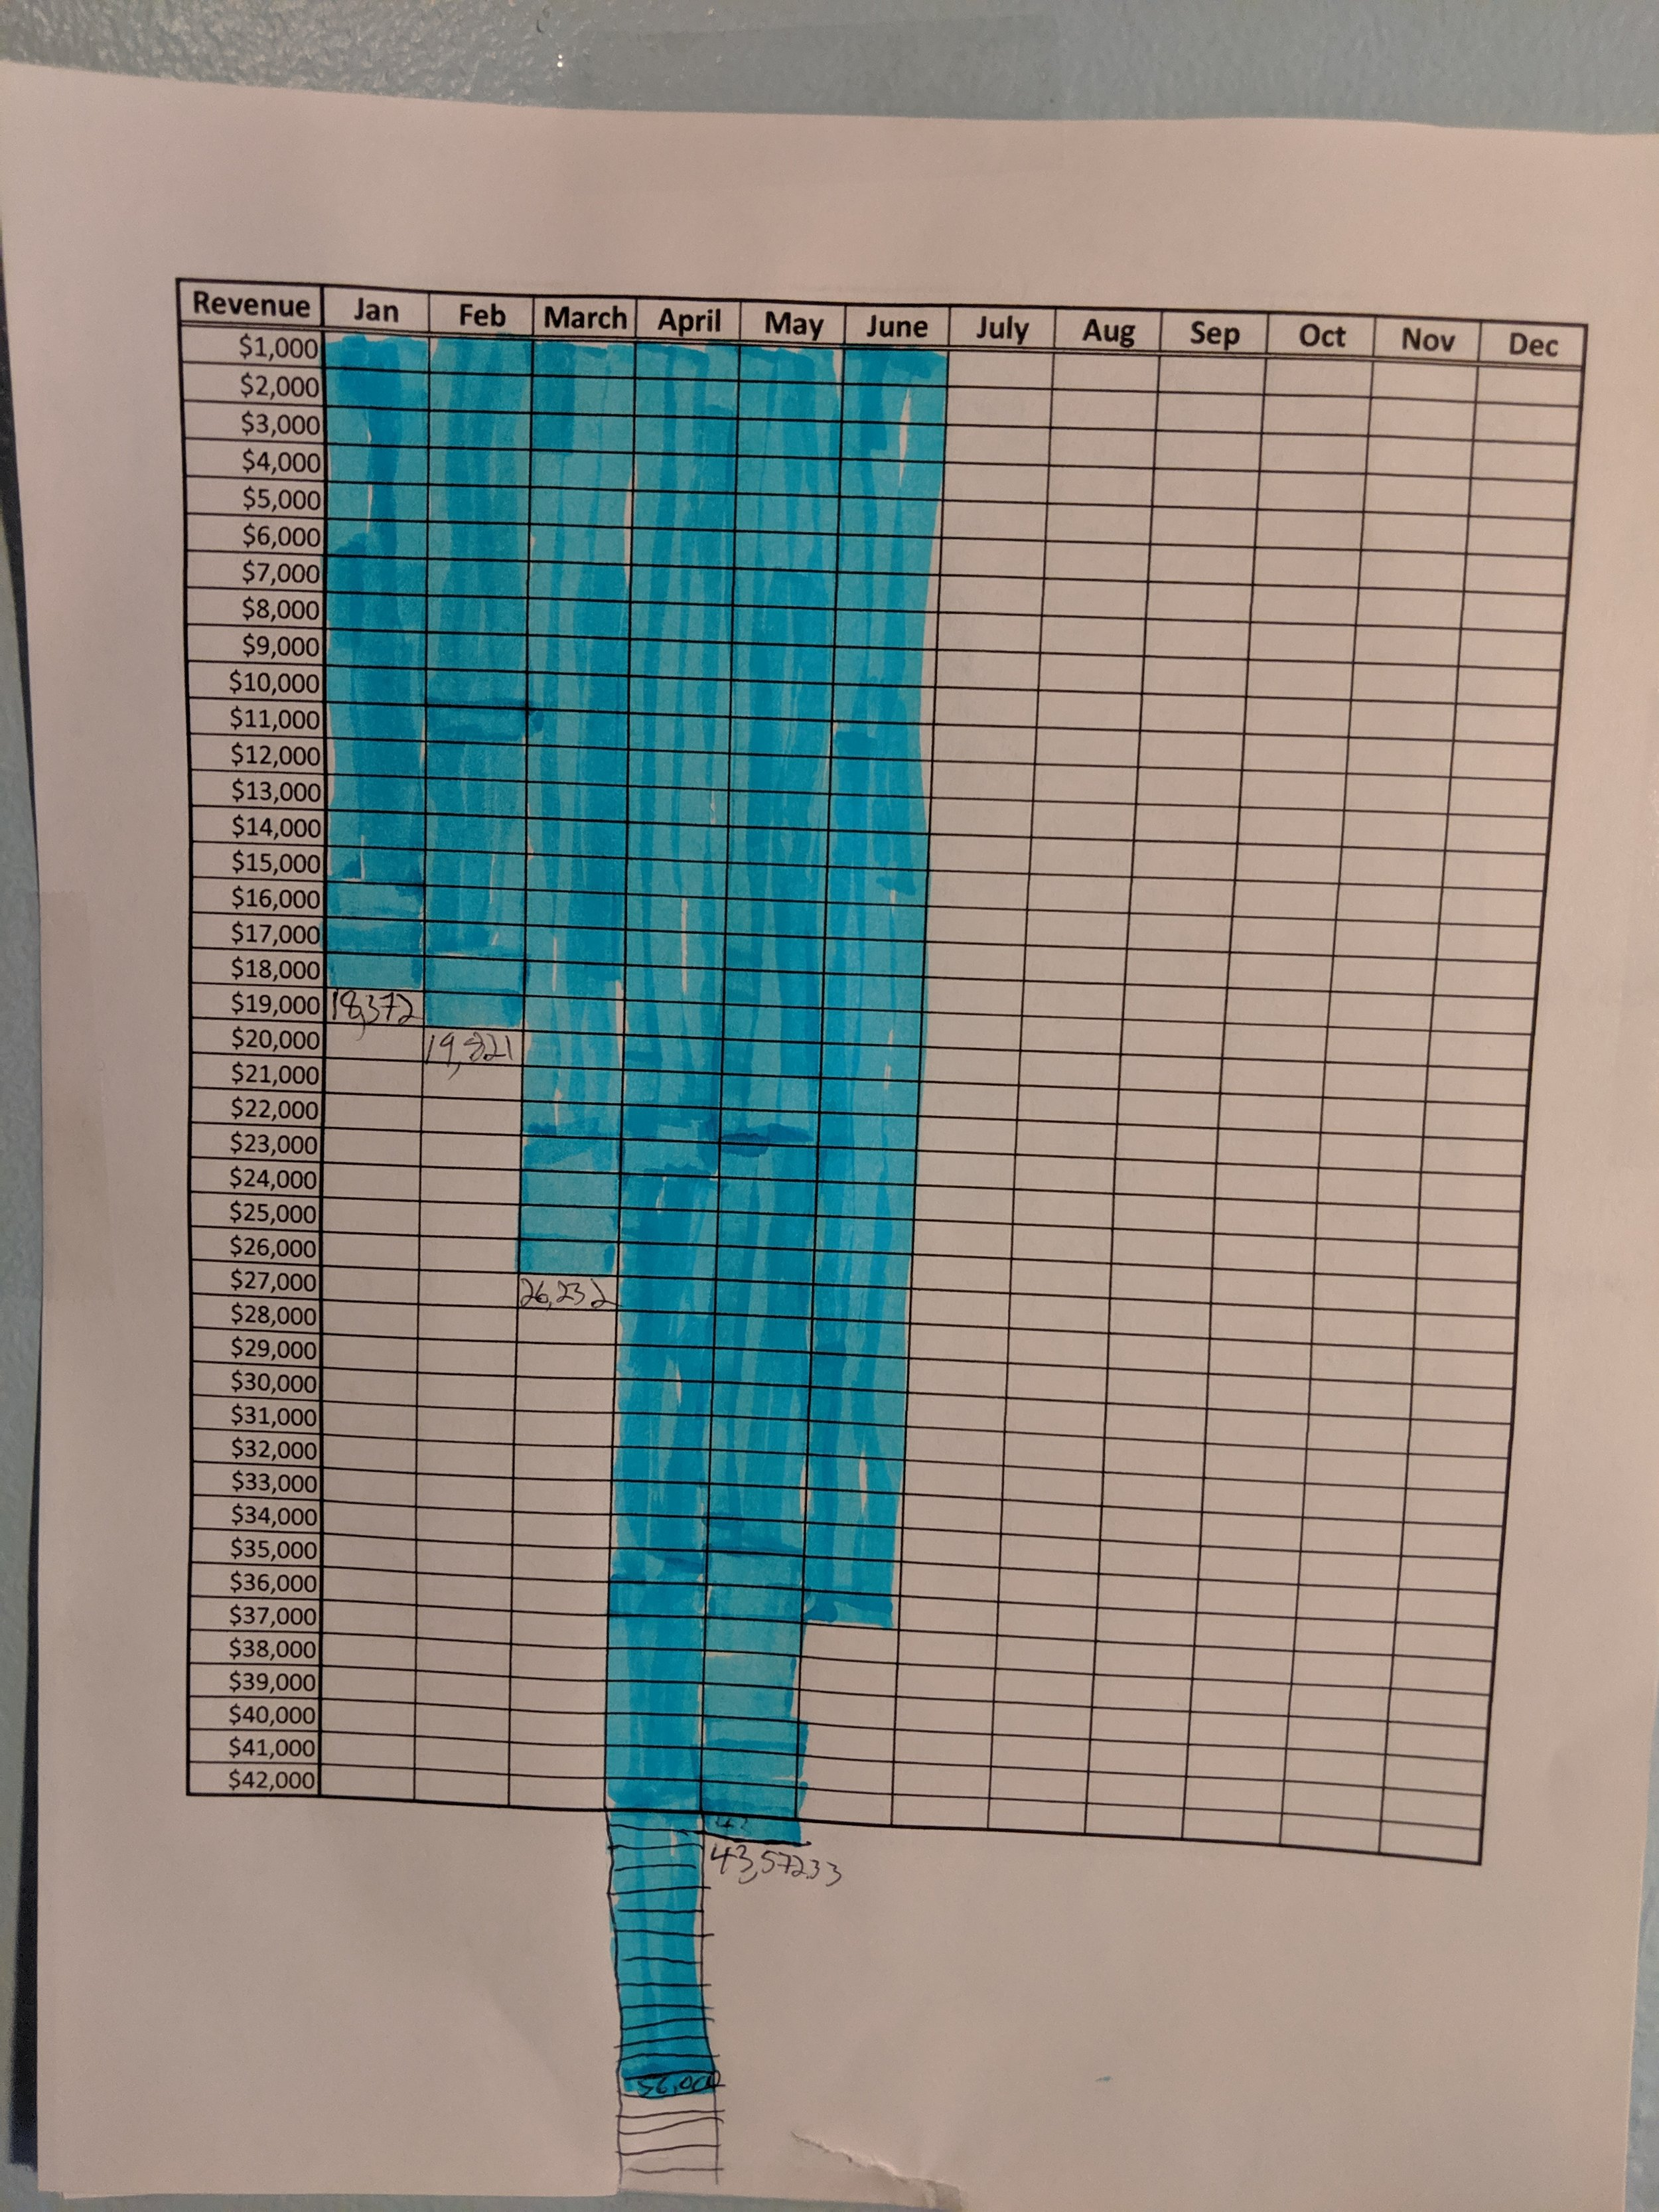 My personal upside down goal tracker on my wall. April was a really fun month of filling in boxes. June is not complete yet. We are hoping to match May.